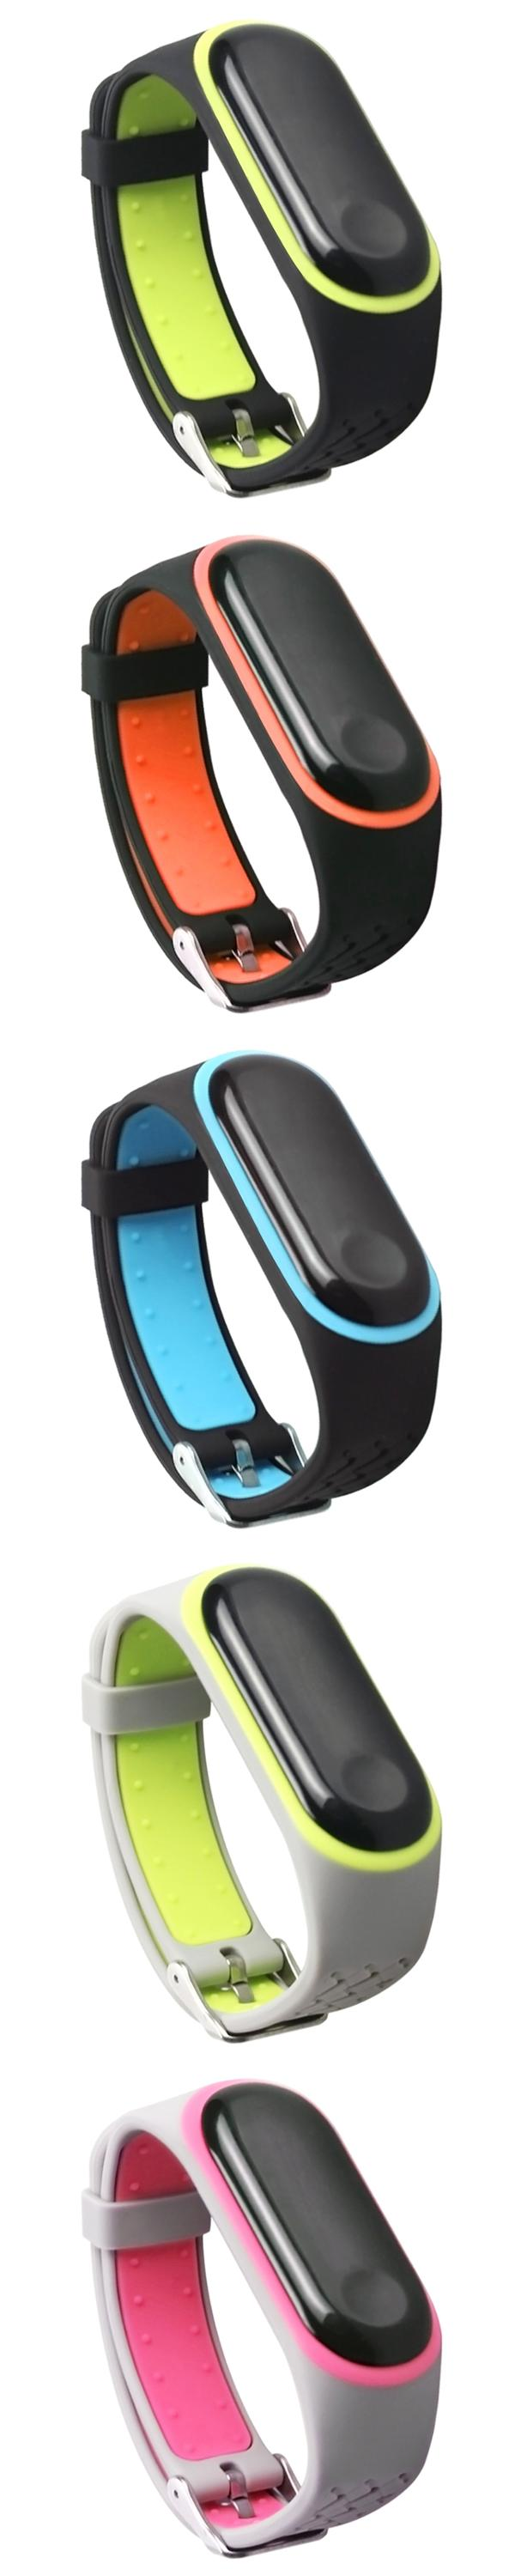 Factory Direct mi band 4 silicone watch strap smart watch band for Xiaomi Bracelet 3/4